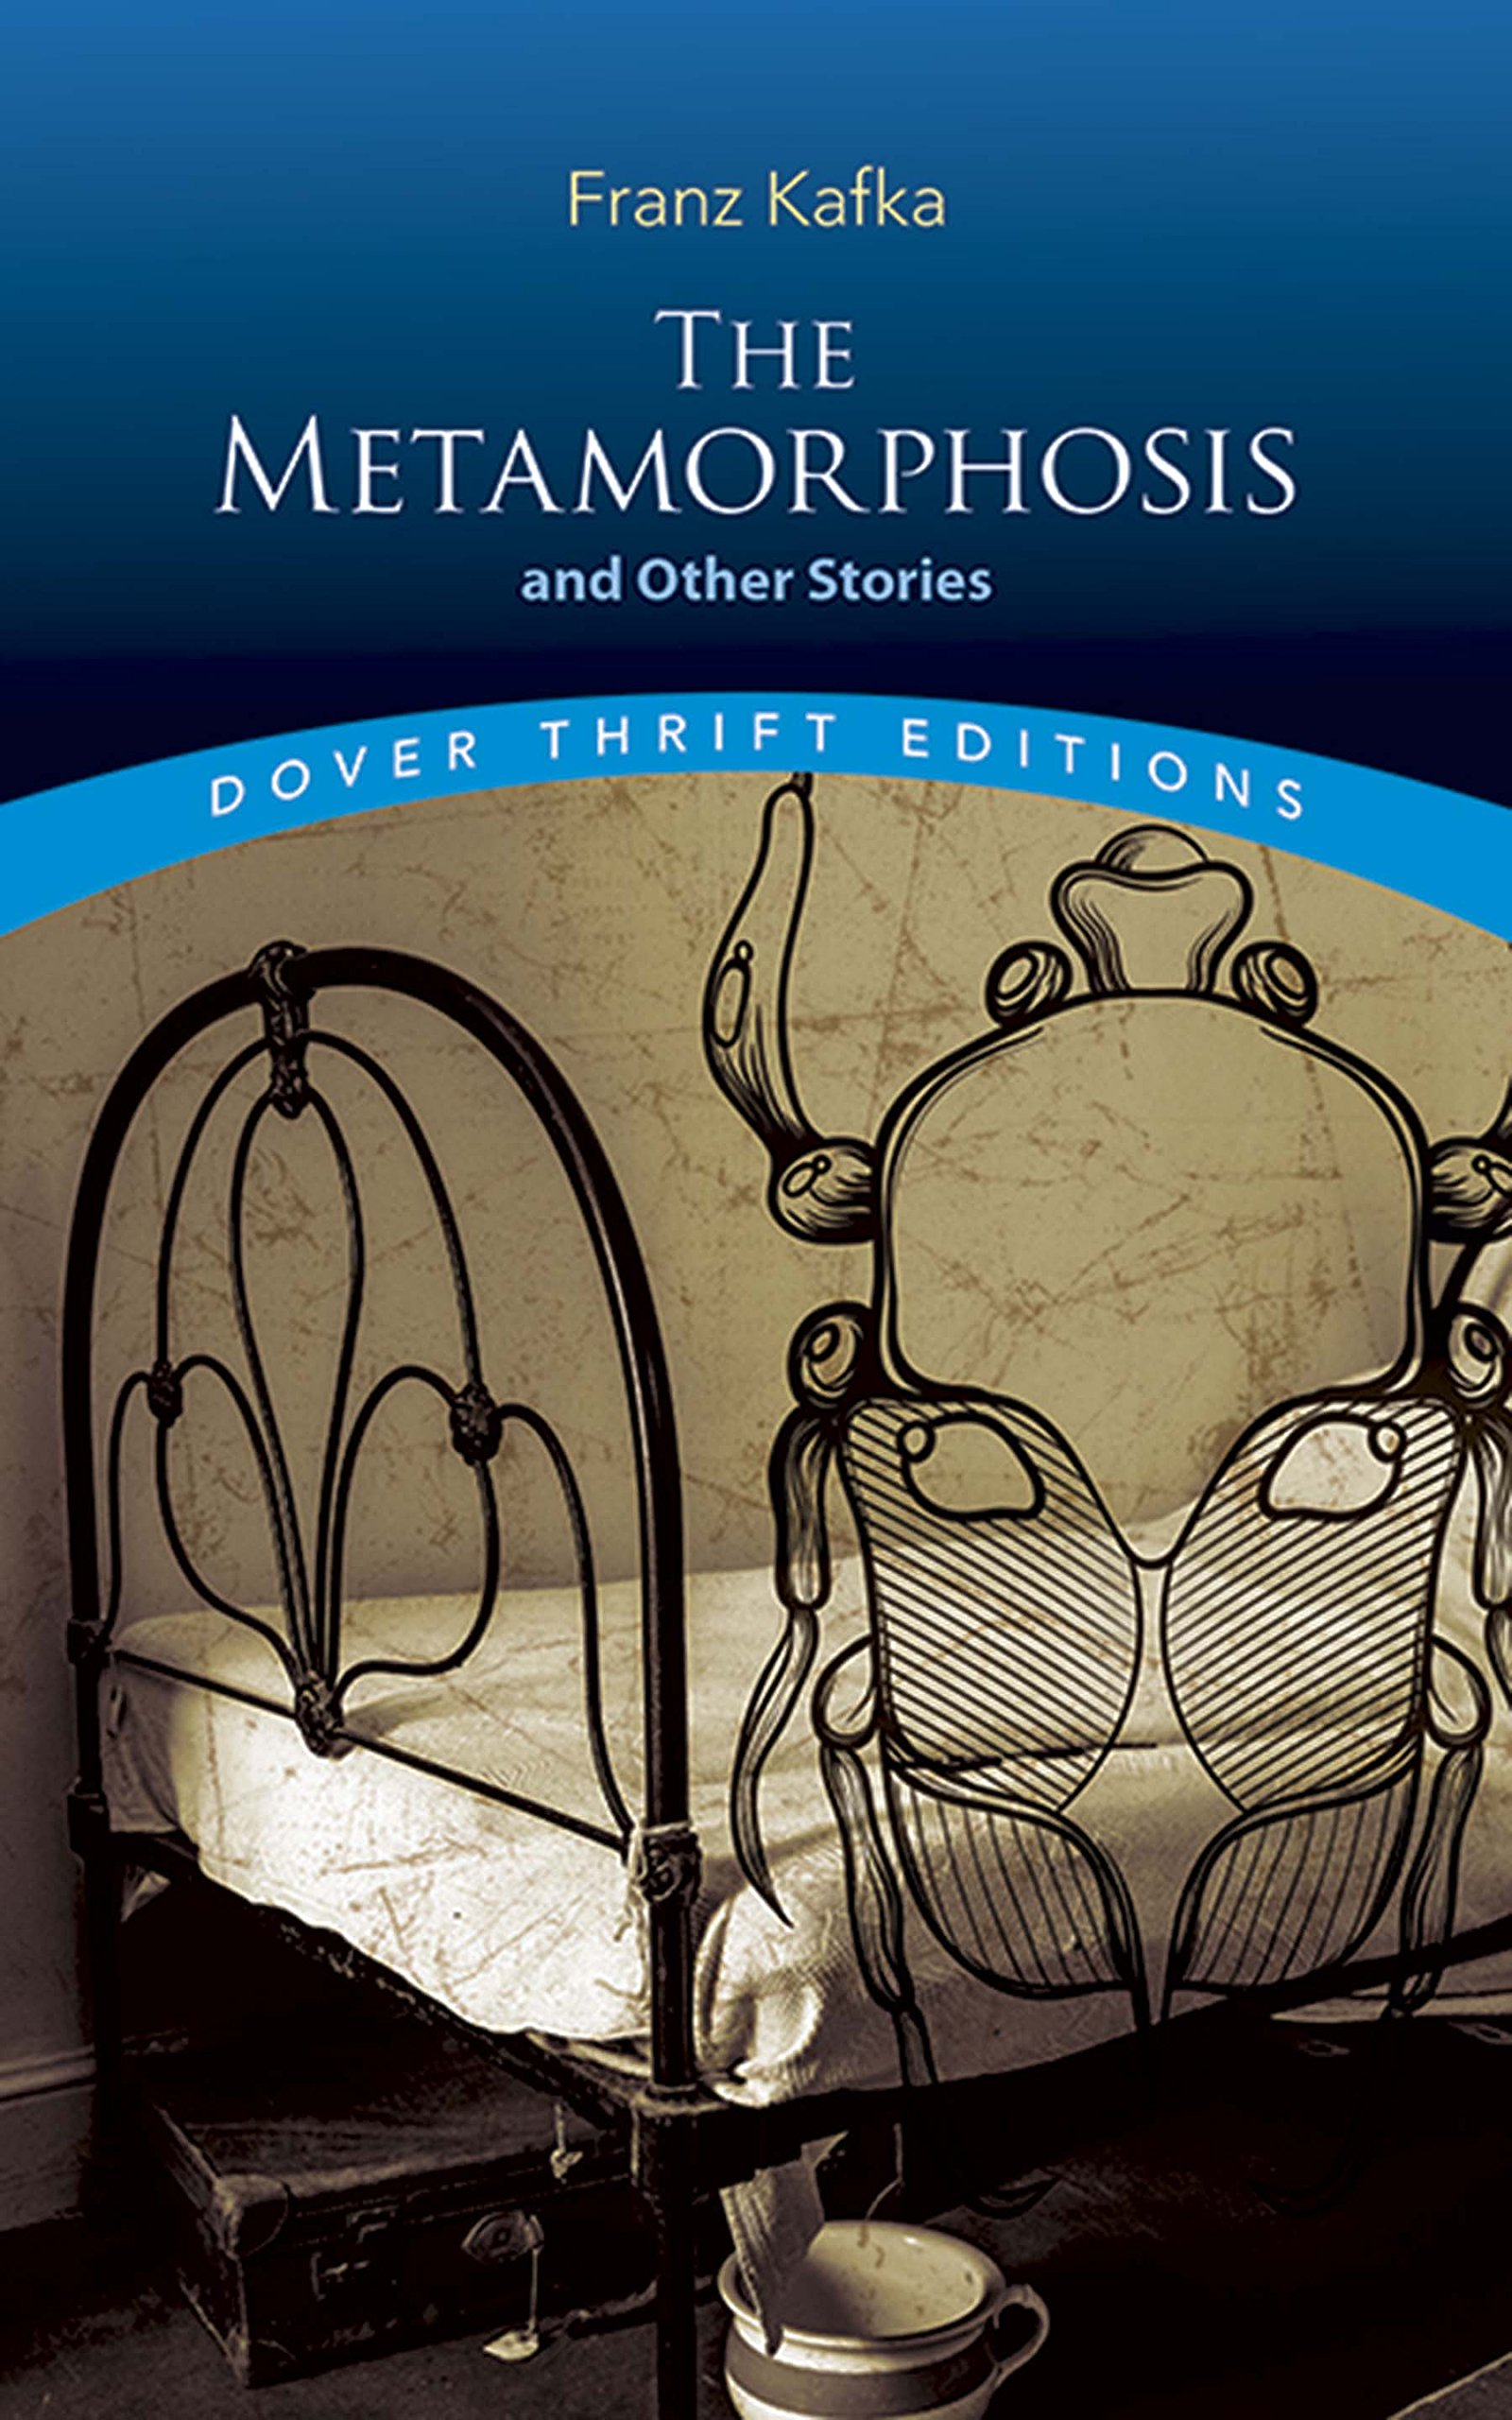 Metamorphosis Other Stories Thrift Editions